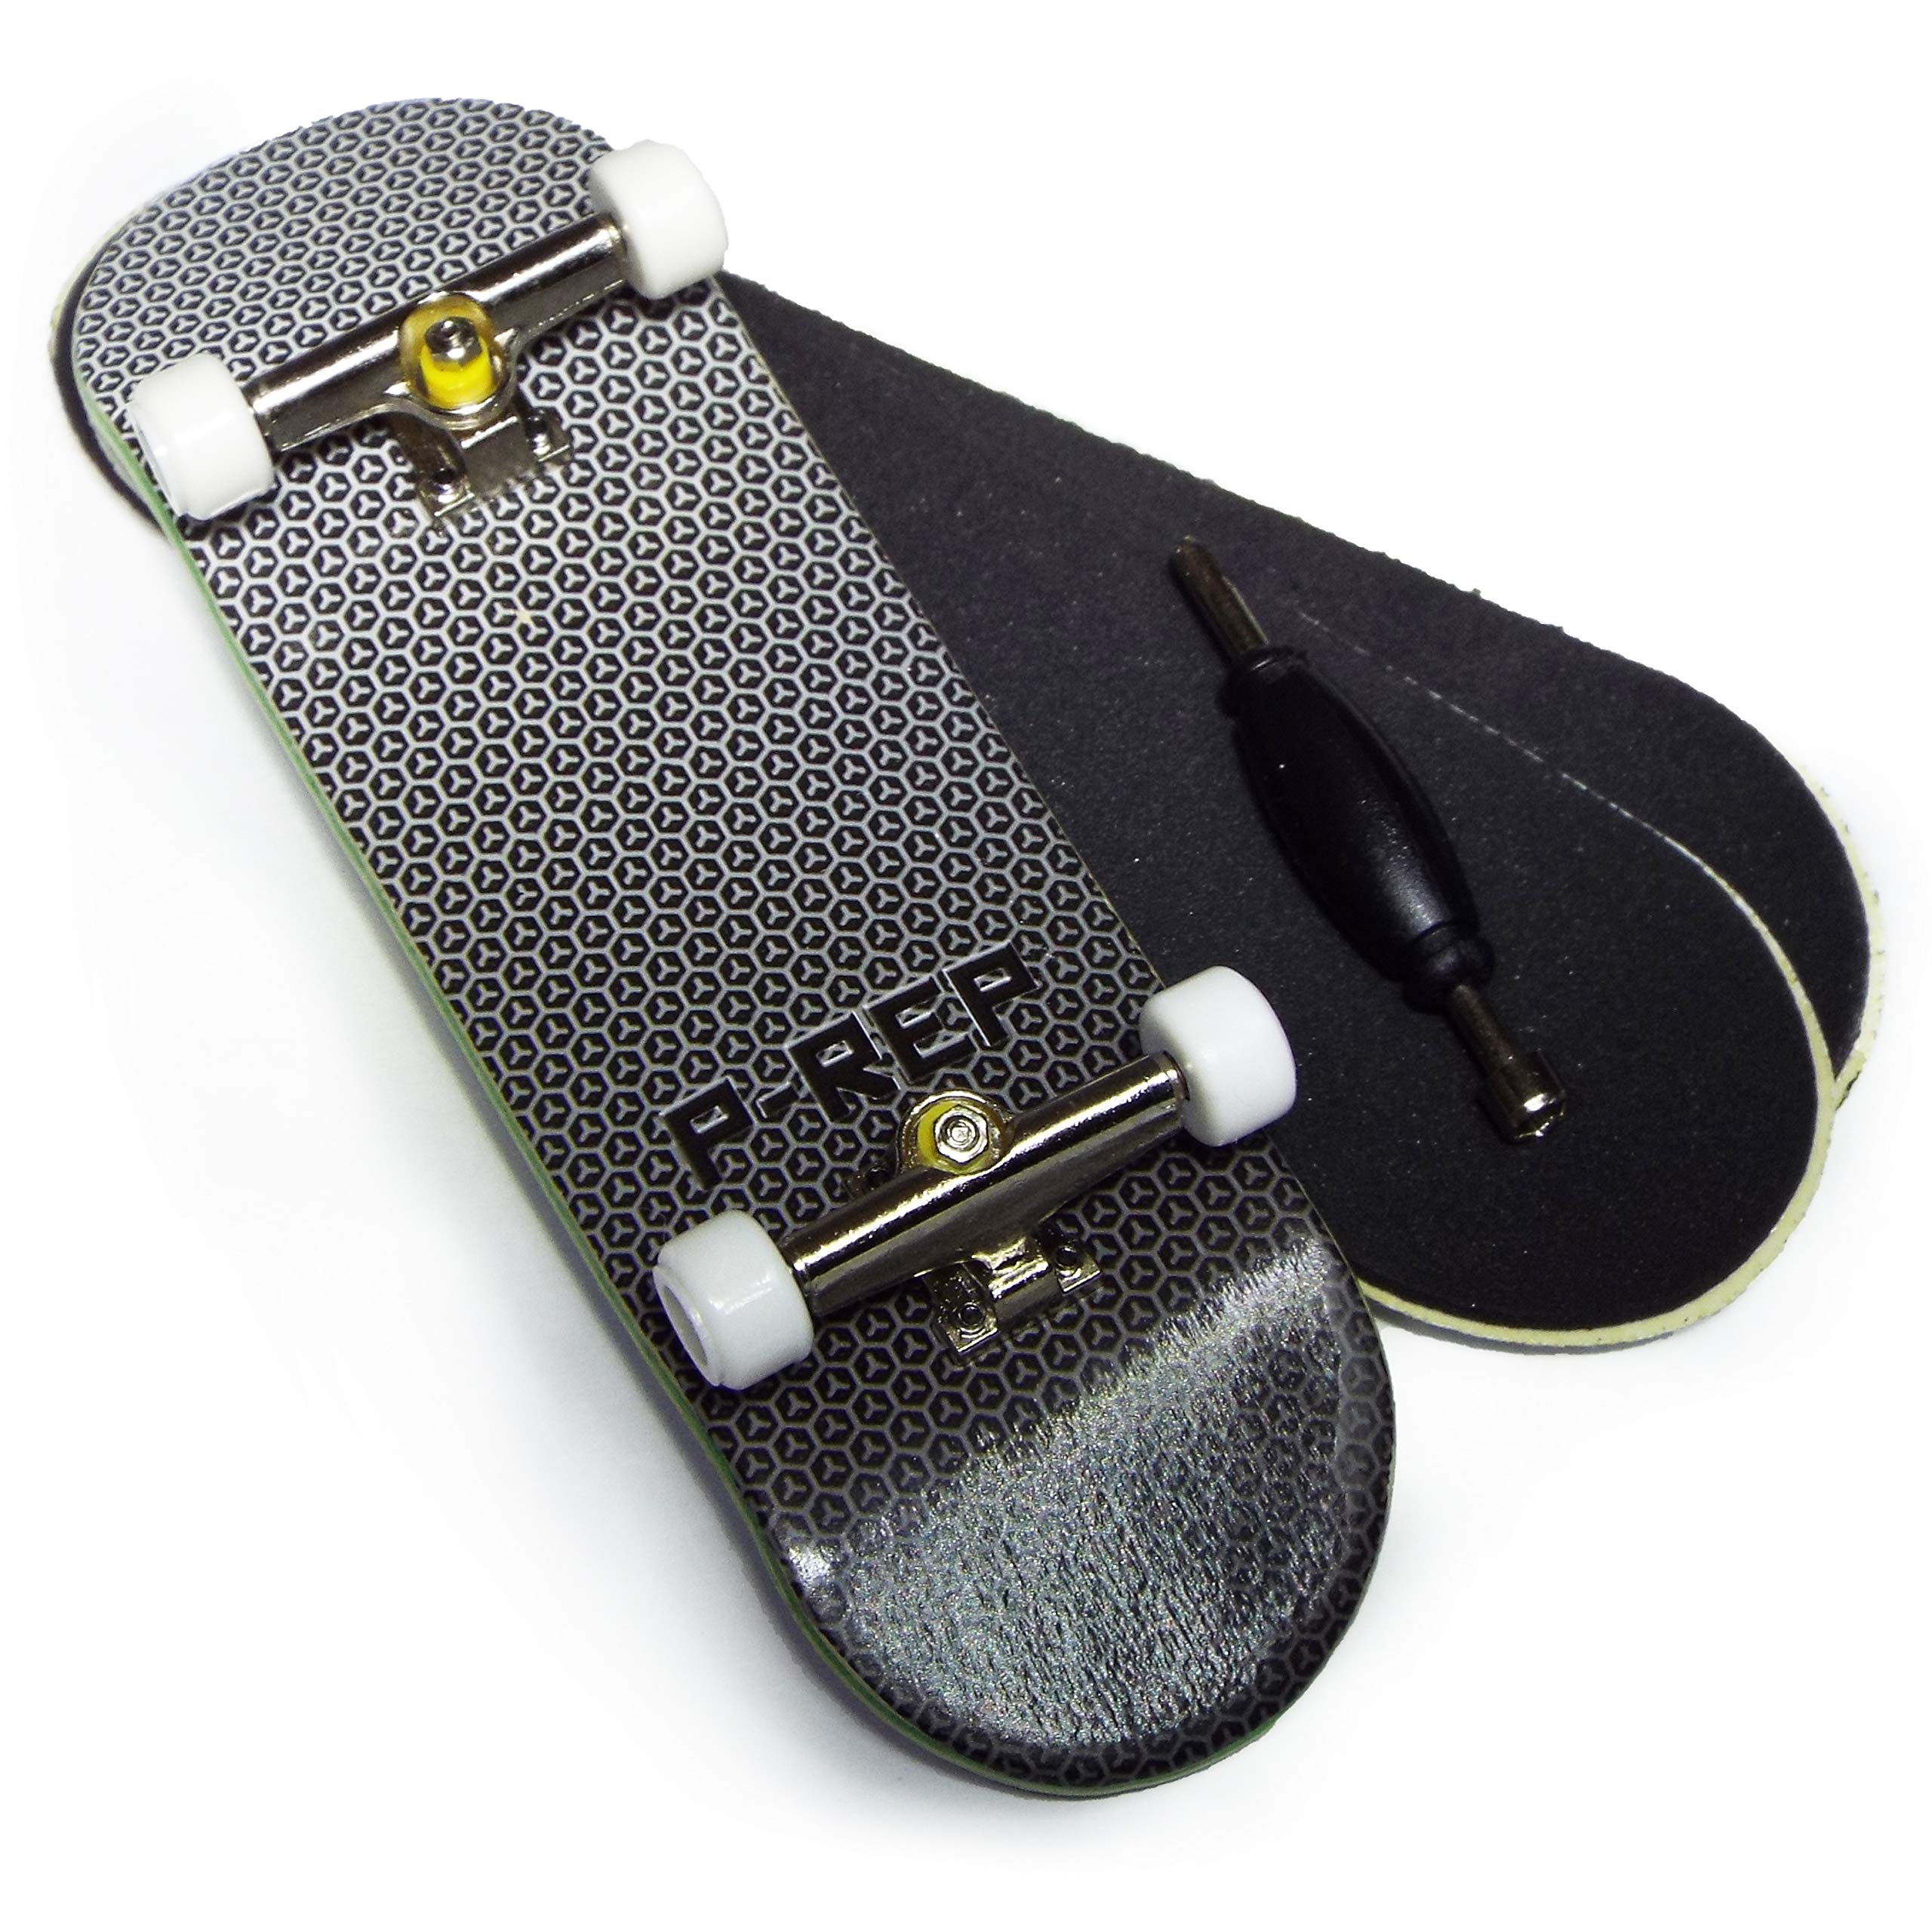 P-REP Starter Complete Wooden Fingerboard 30mm x 100mm - White Logo by P-REP